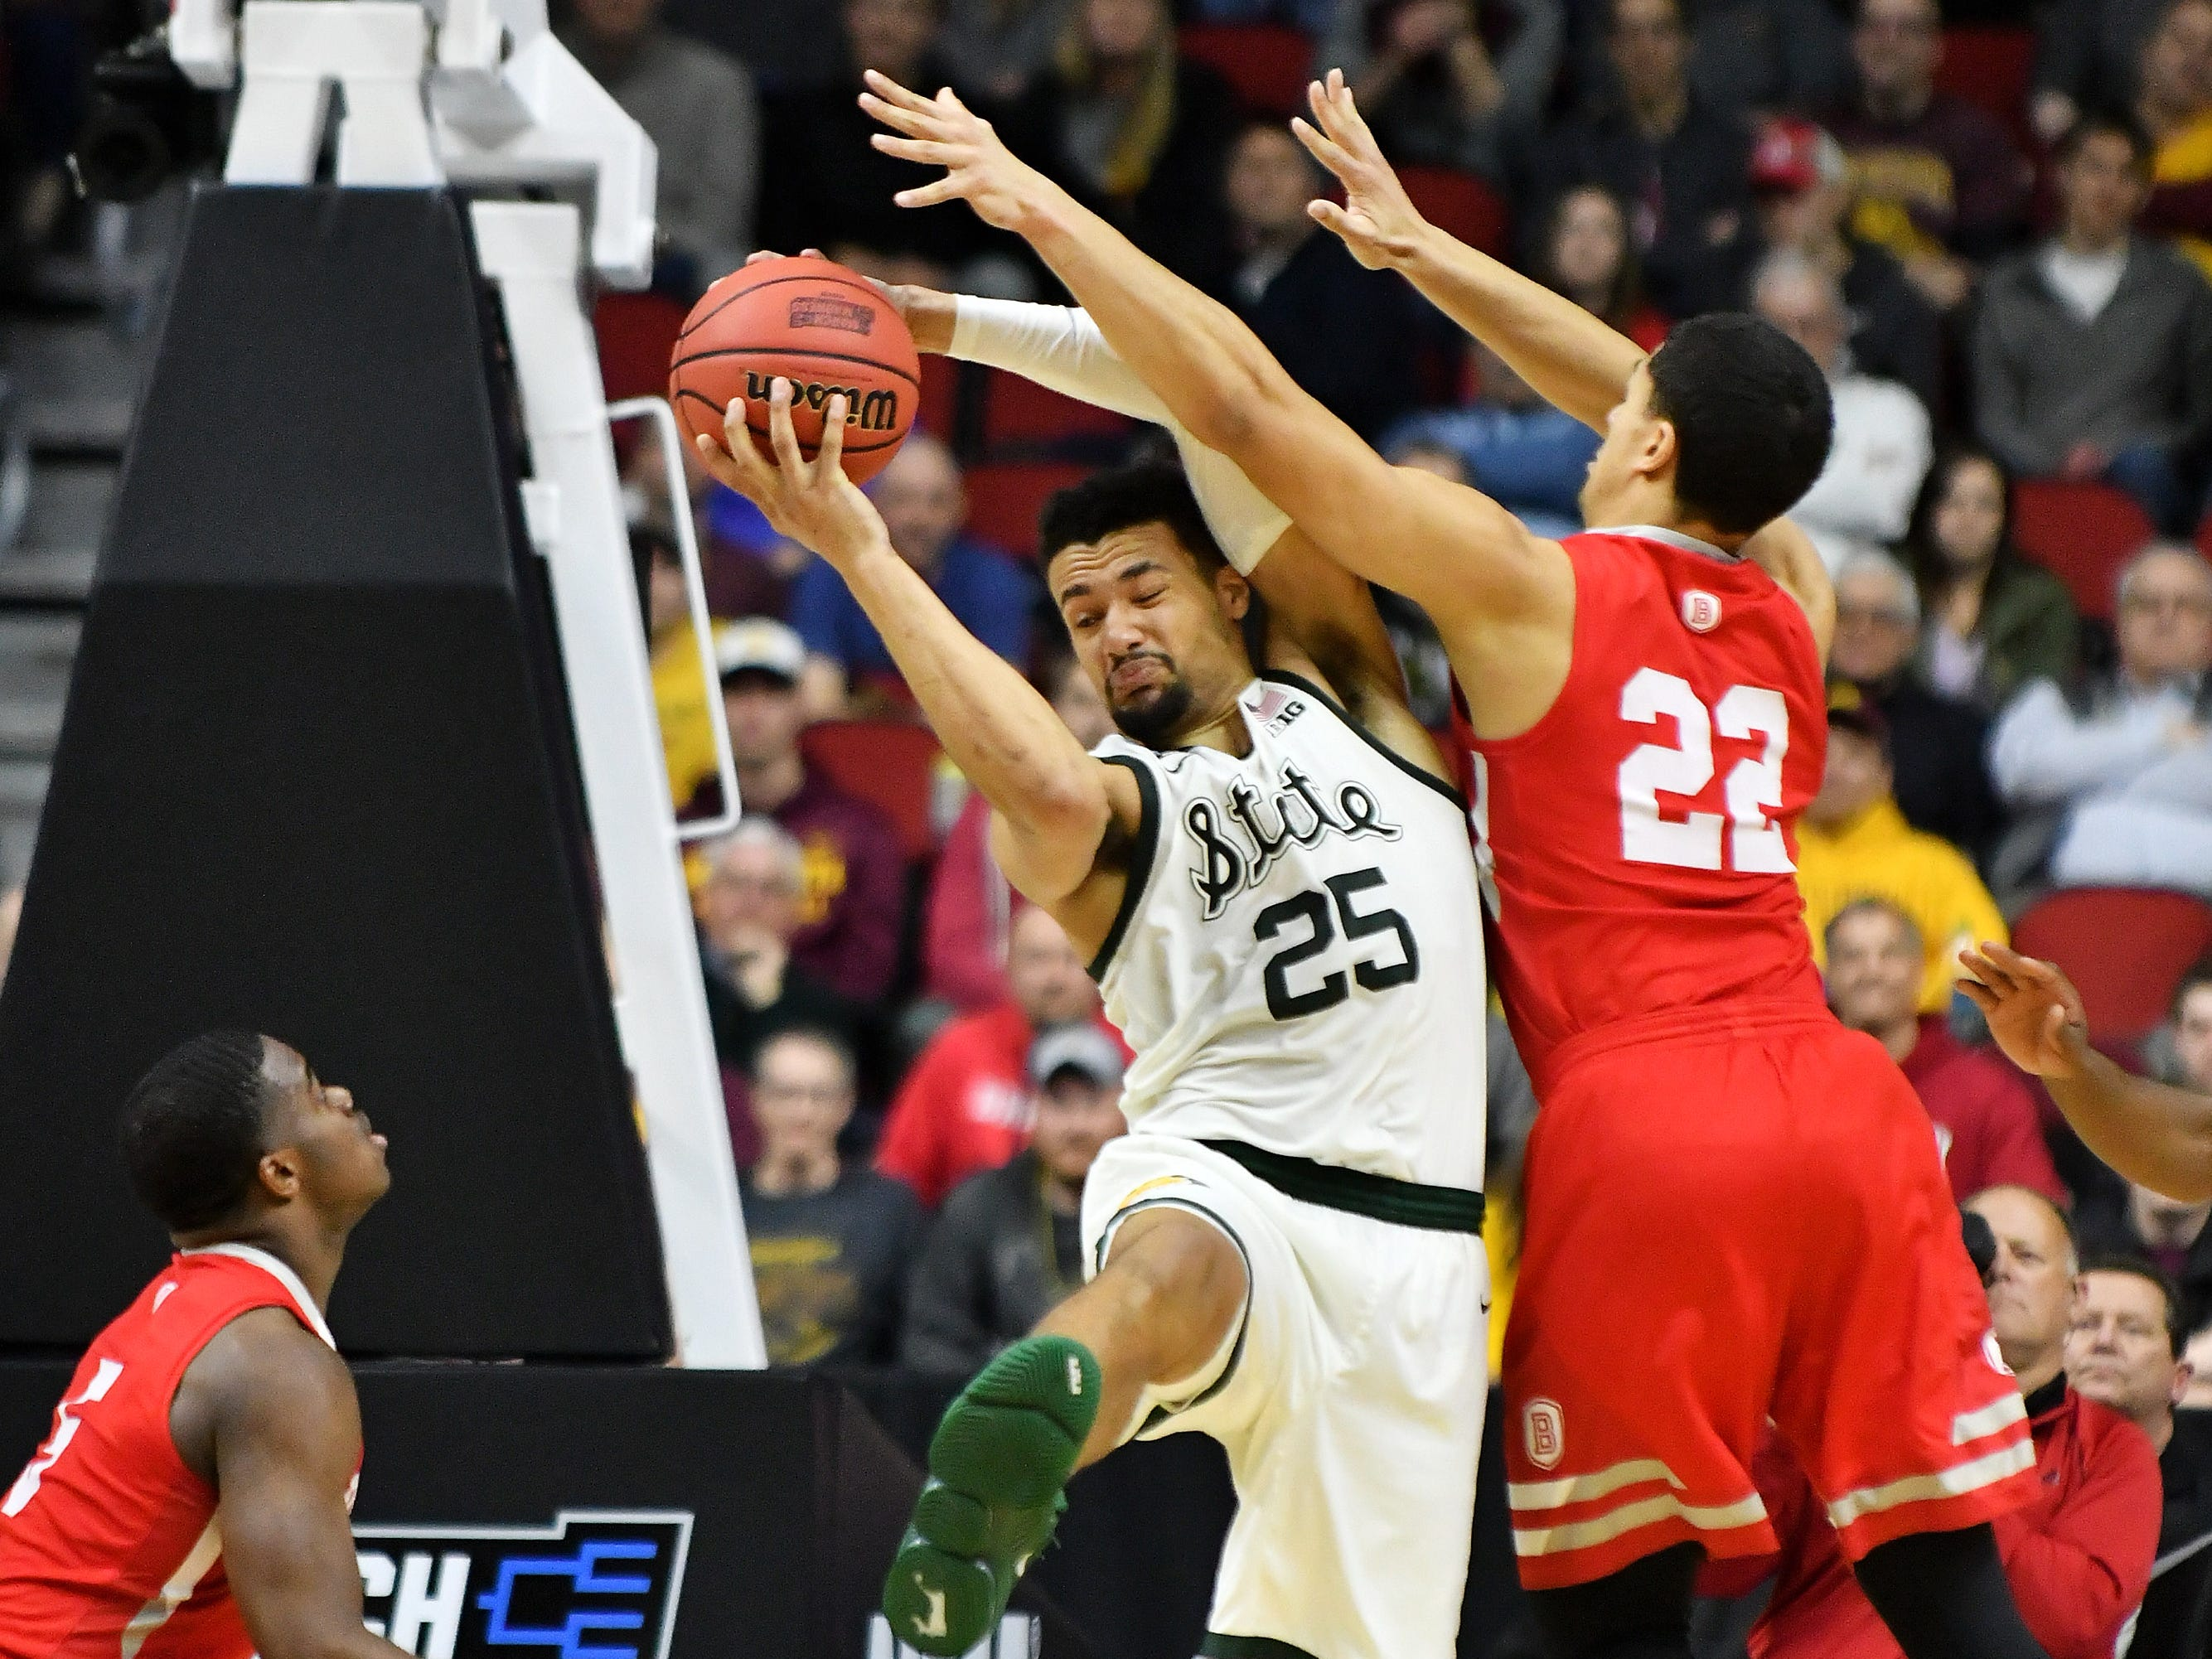 Michigan State forward Kenny Goins (25) comes up with a rebound between Bradley guard Ja'Shon Henry (22) and guard Darrell Brown, left, in the second half.